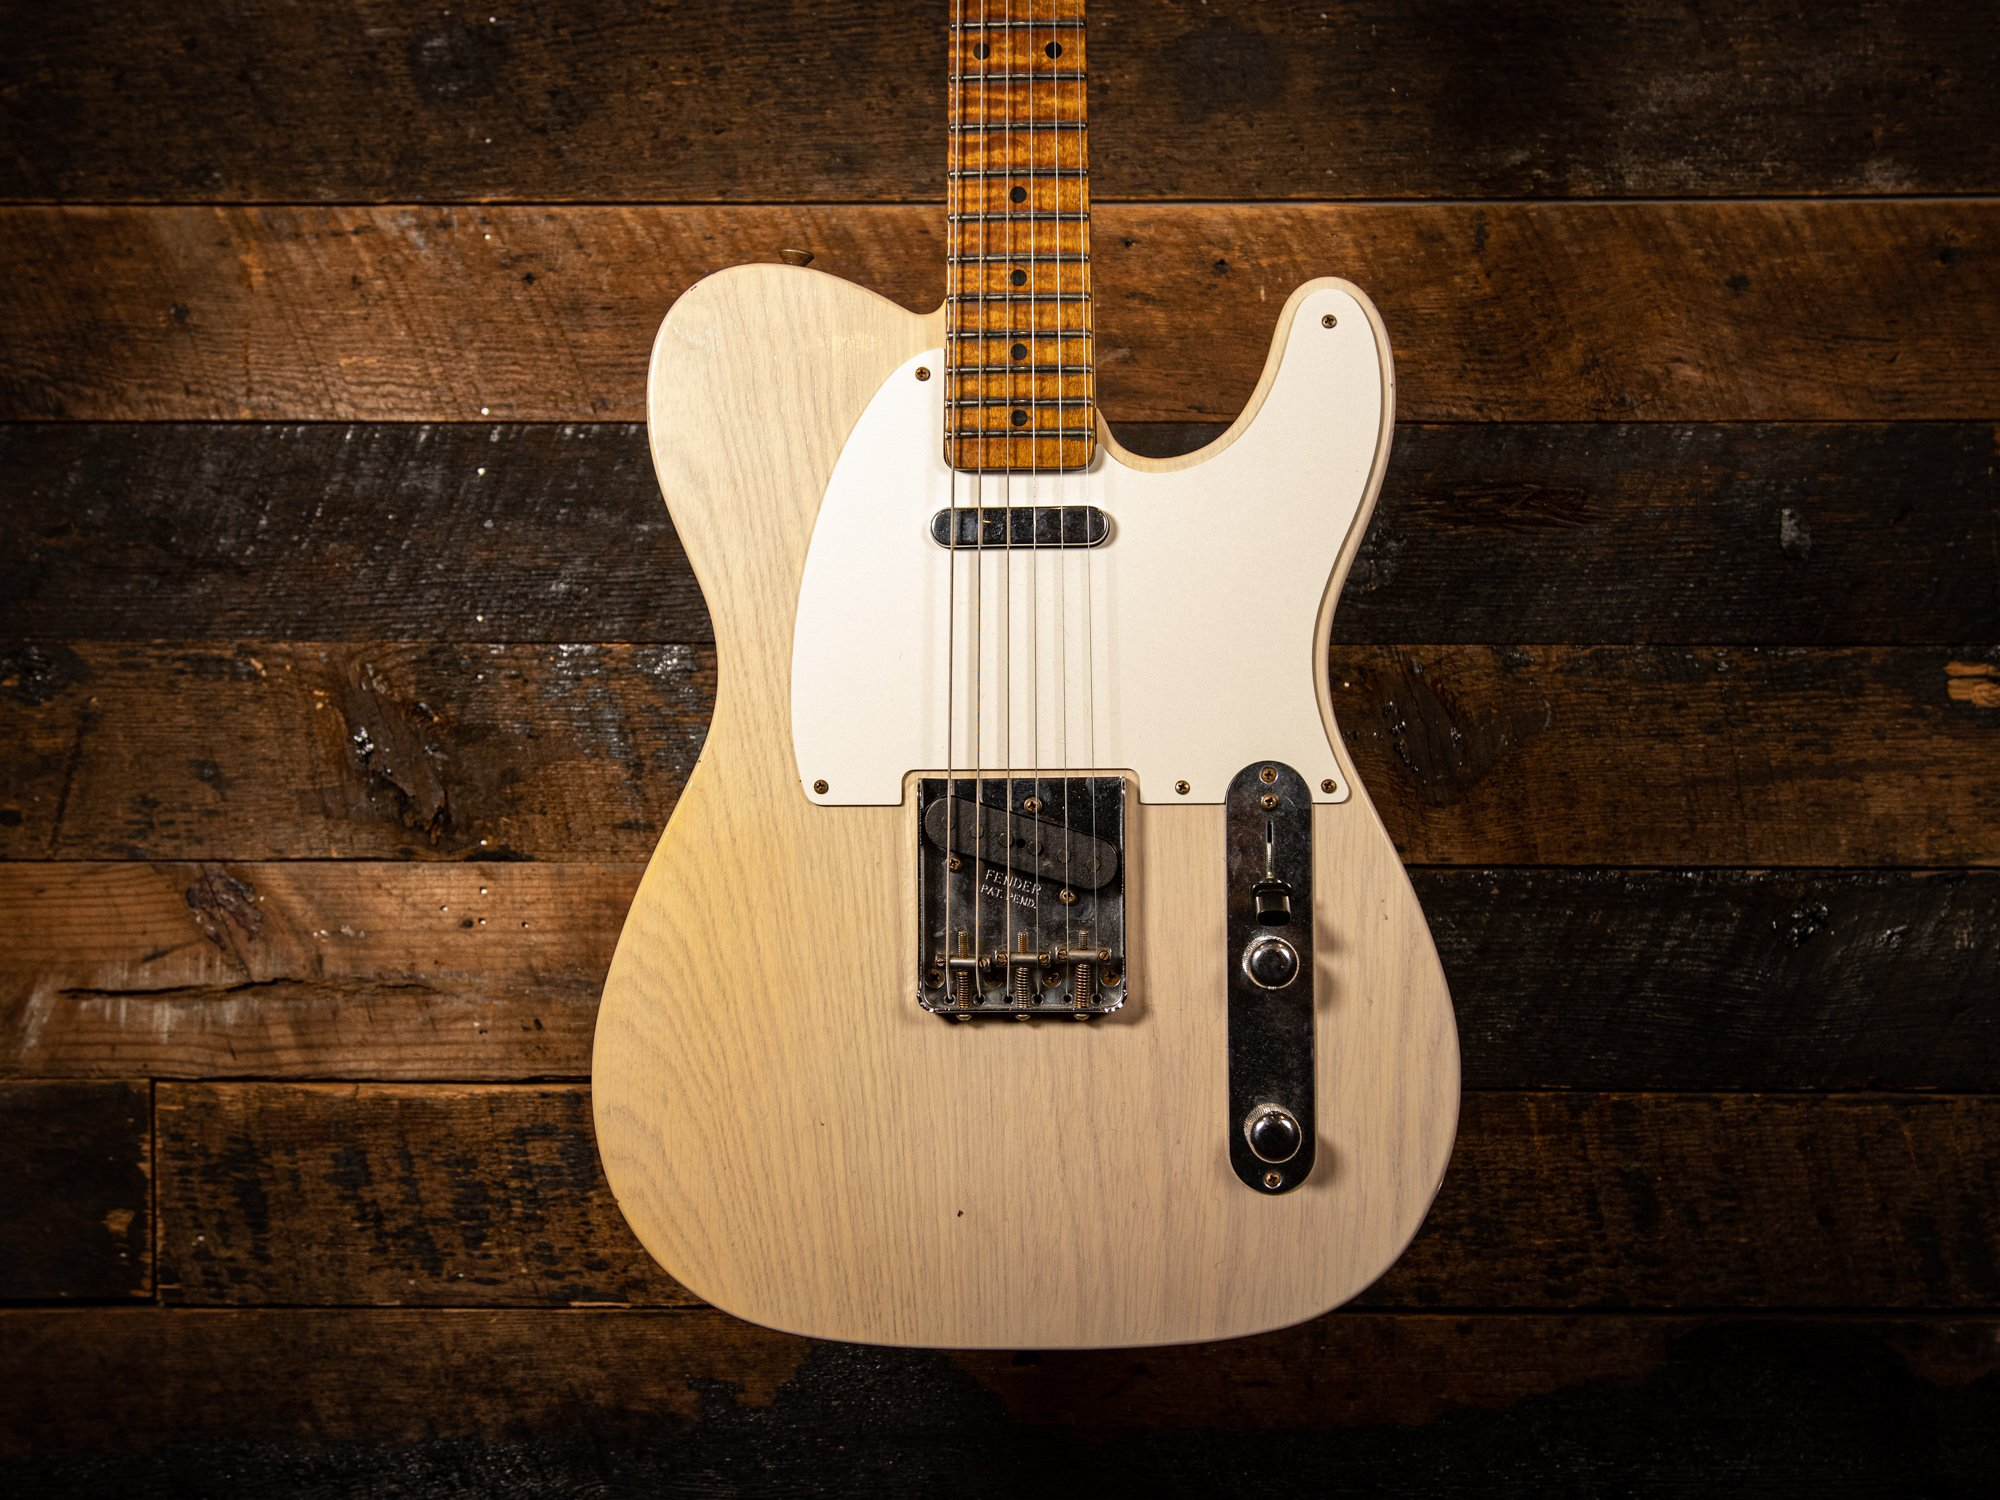 Fender Custom Shop 1955 Telecaster Journeyman Relic in Aged White Blonde